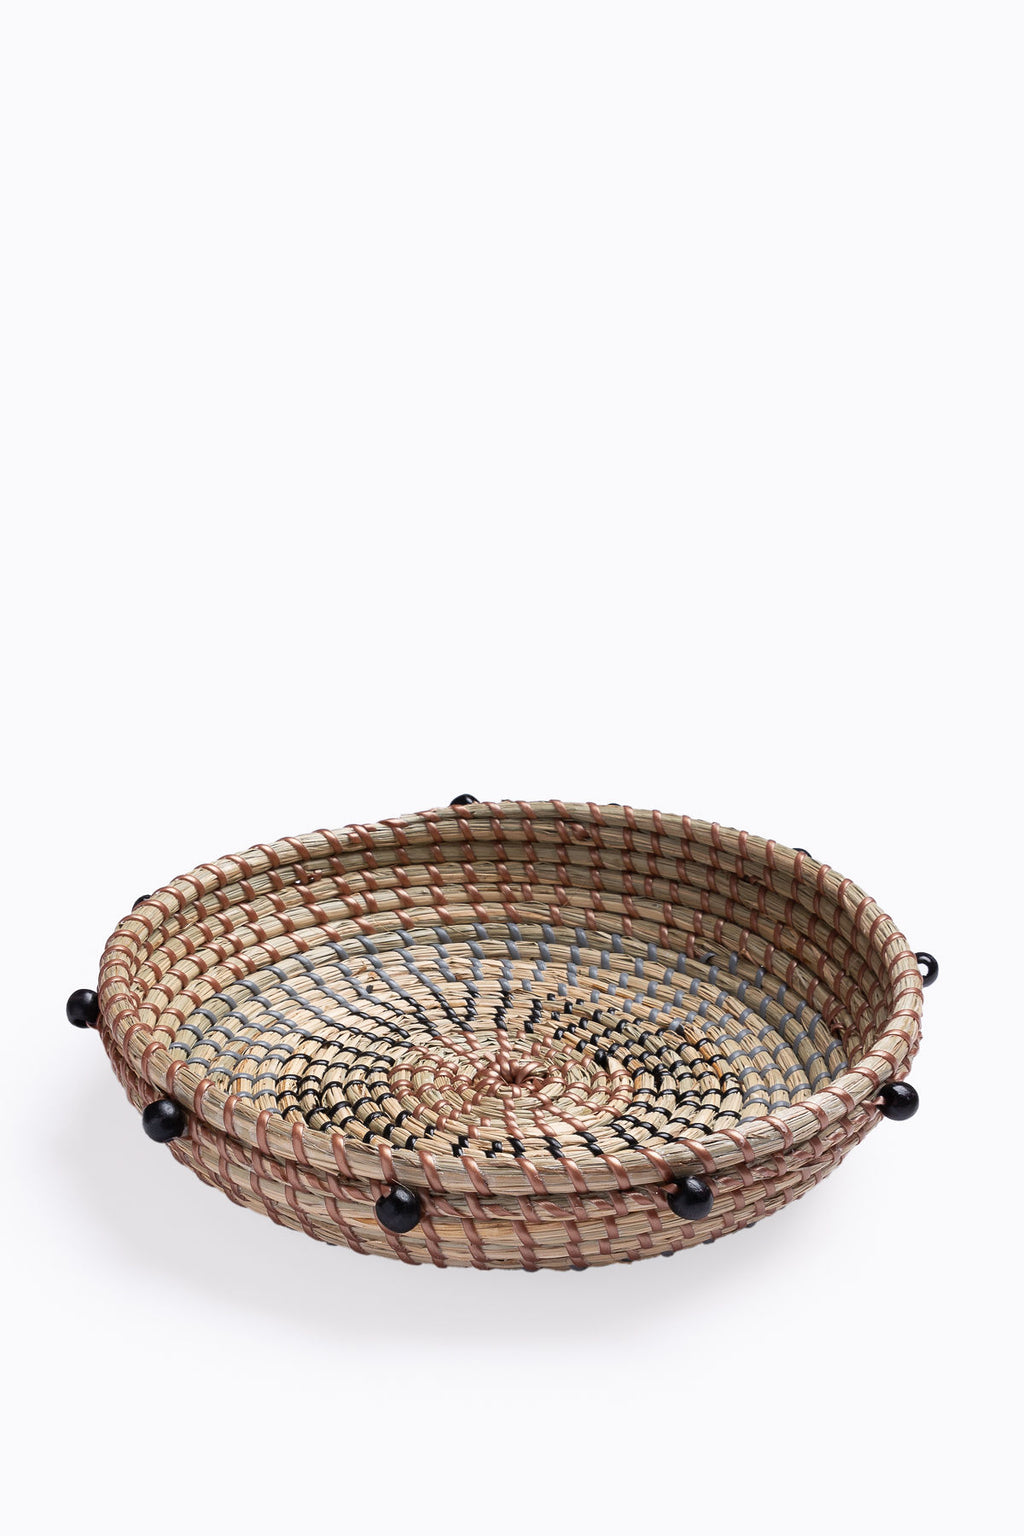 HOME: Natural Woven Seagrass Basket w/ Black Beads